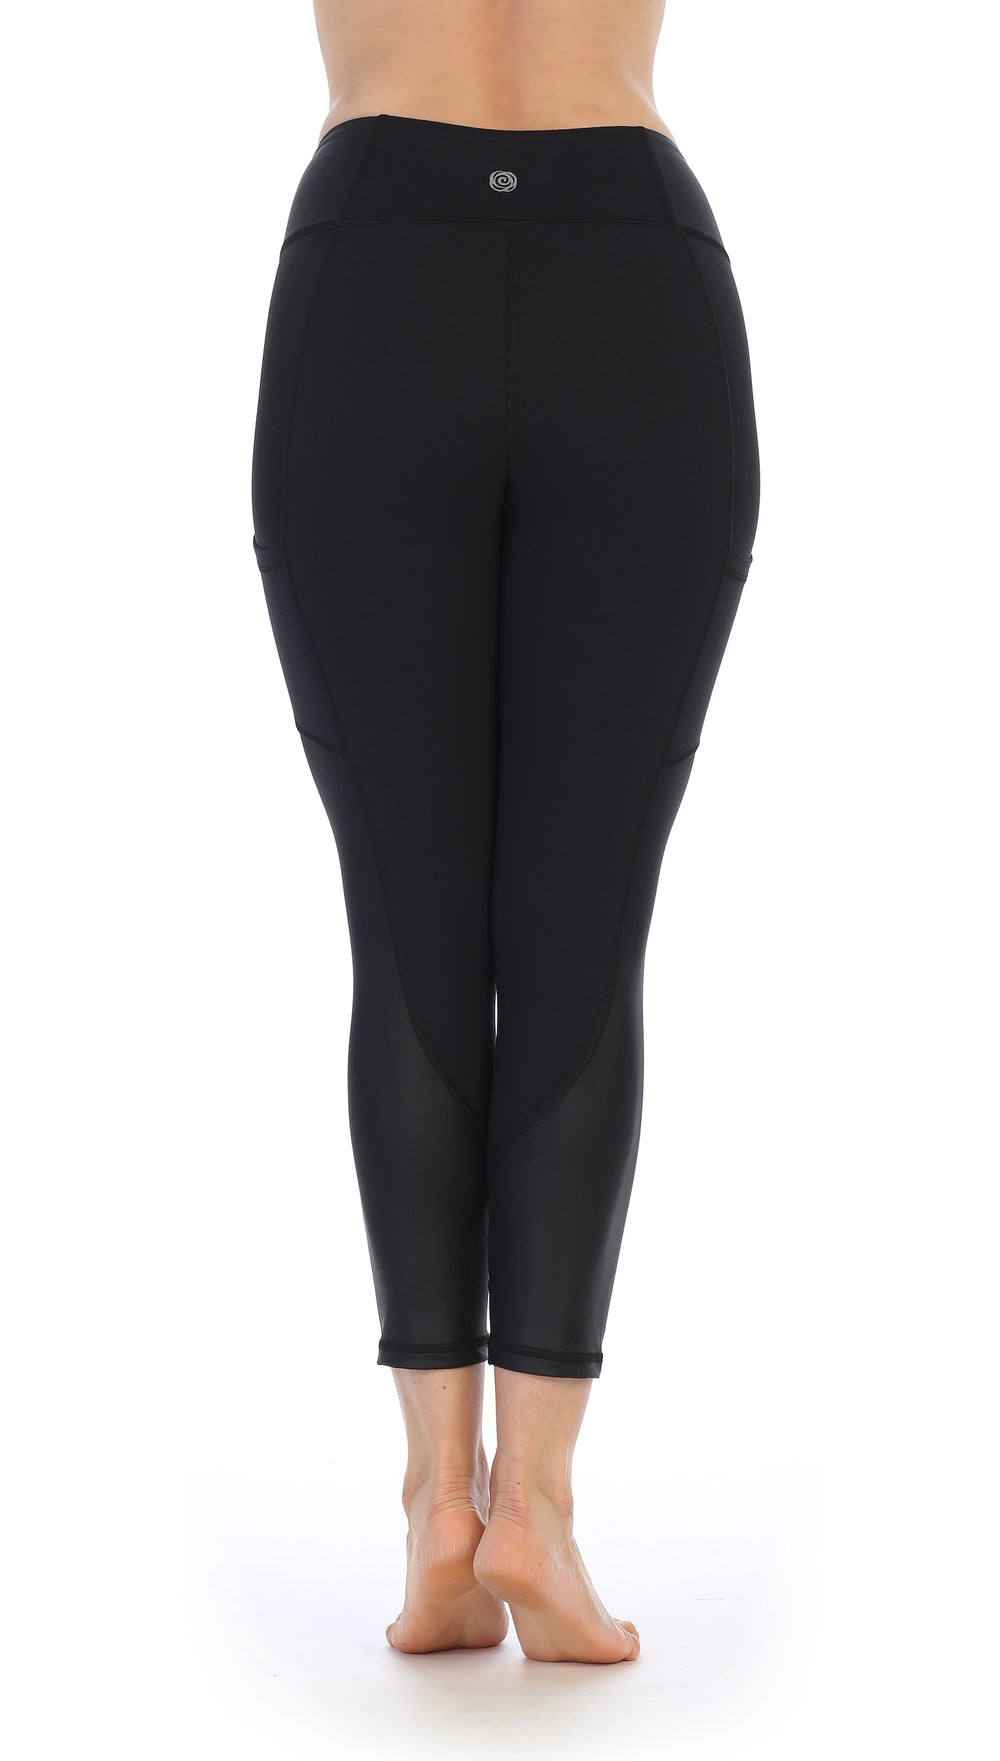 Black Ultra-Soft Color Block 7/8 Pocket Leggings-back image